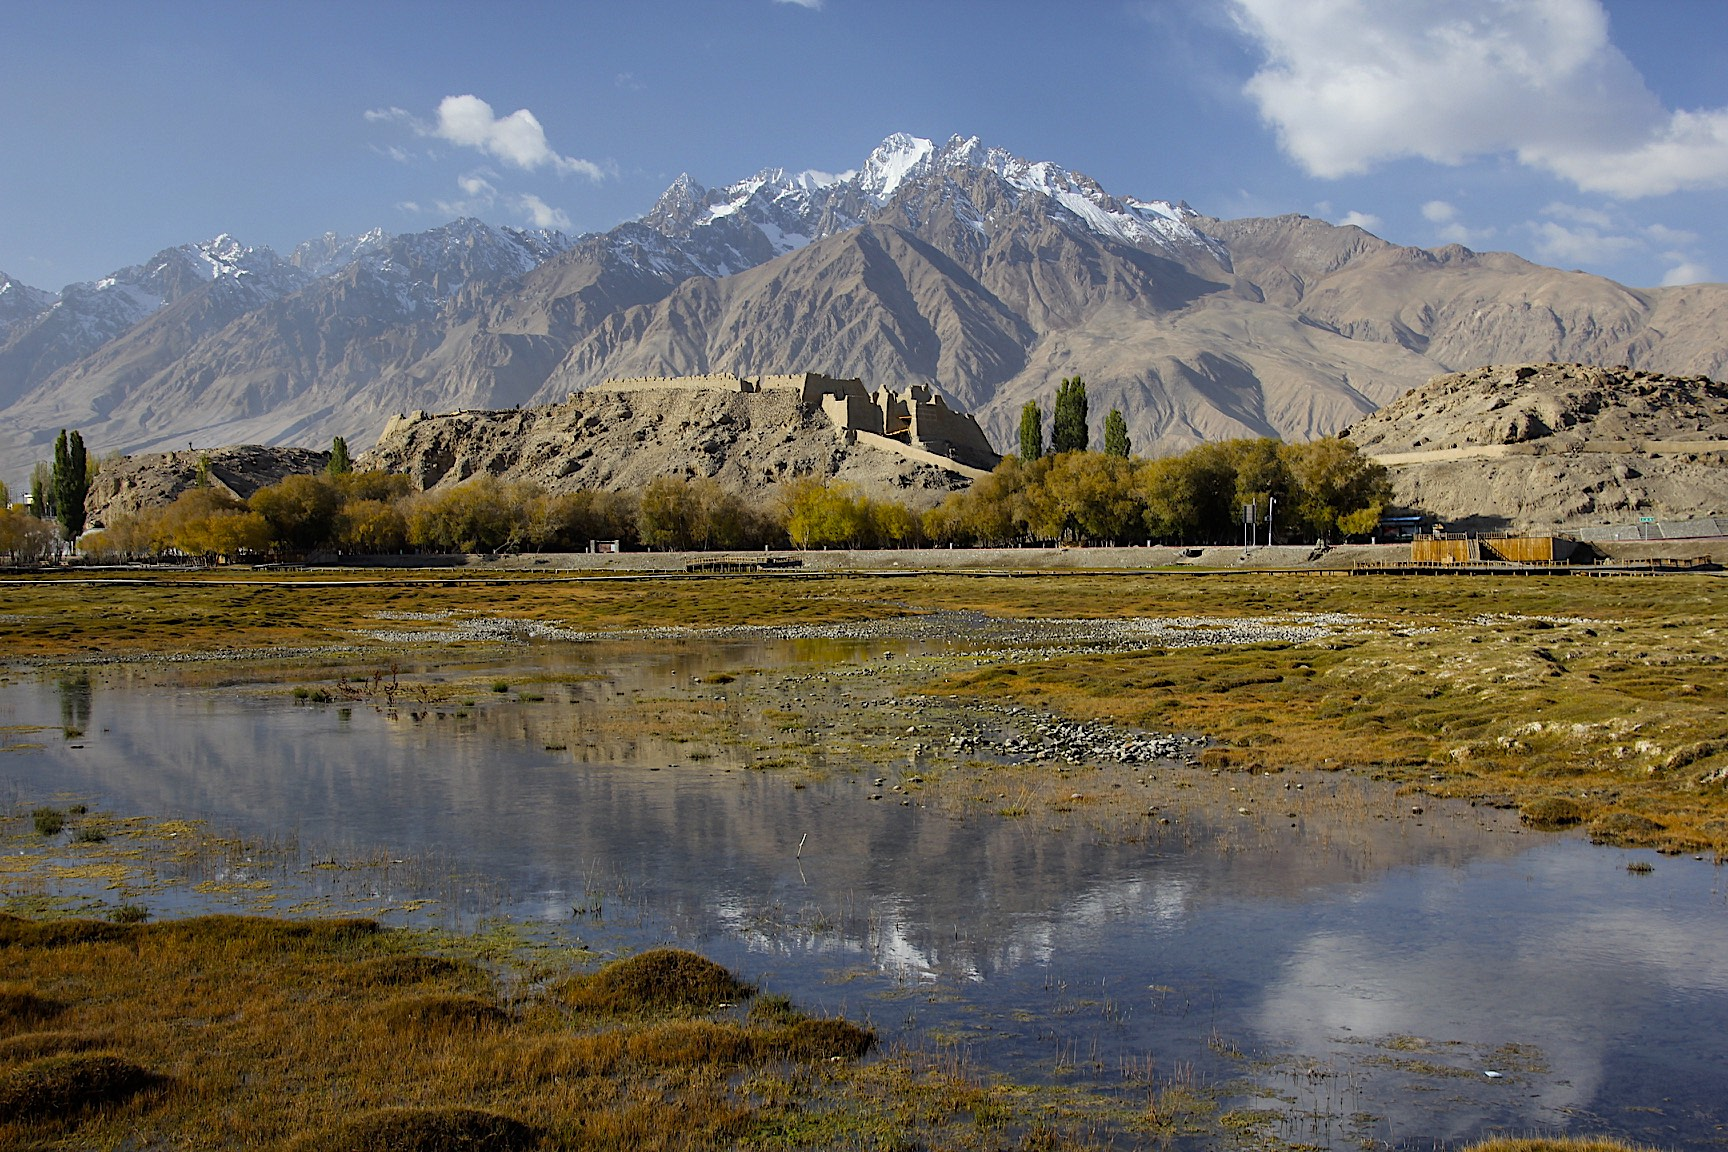 Tashkurgan old fort and the Pamir Mountains near the border of China, Pakistan and Afghanistan